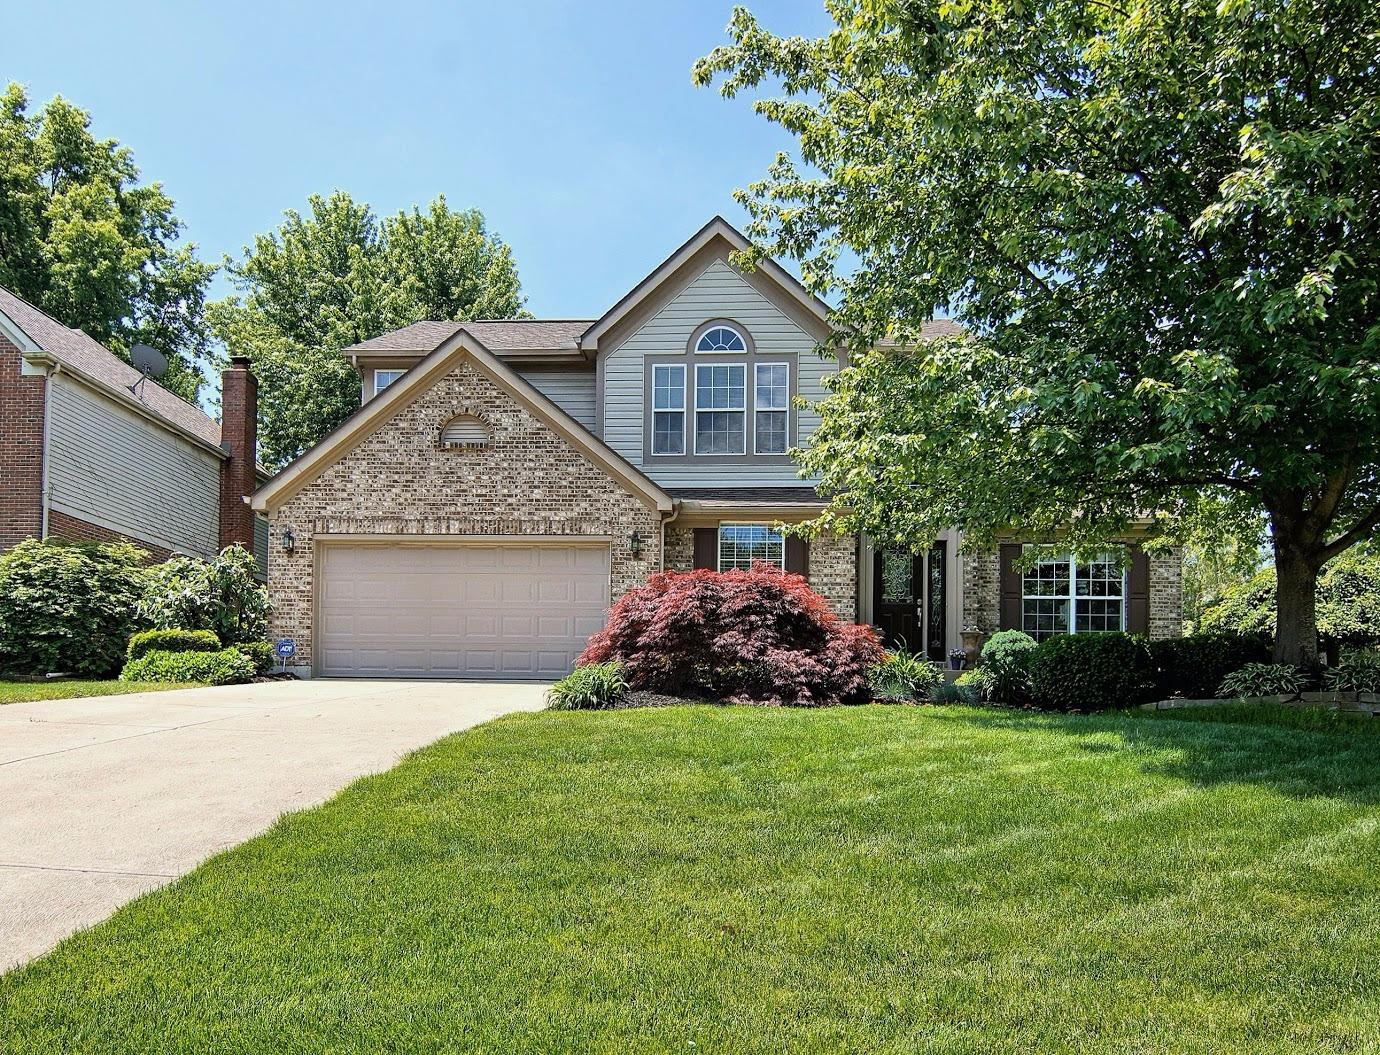 6299 Paxton Woods Drive, Miami Twp, OH 45140